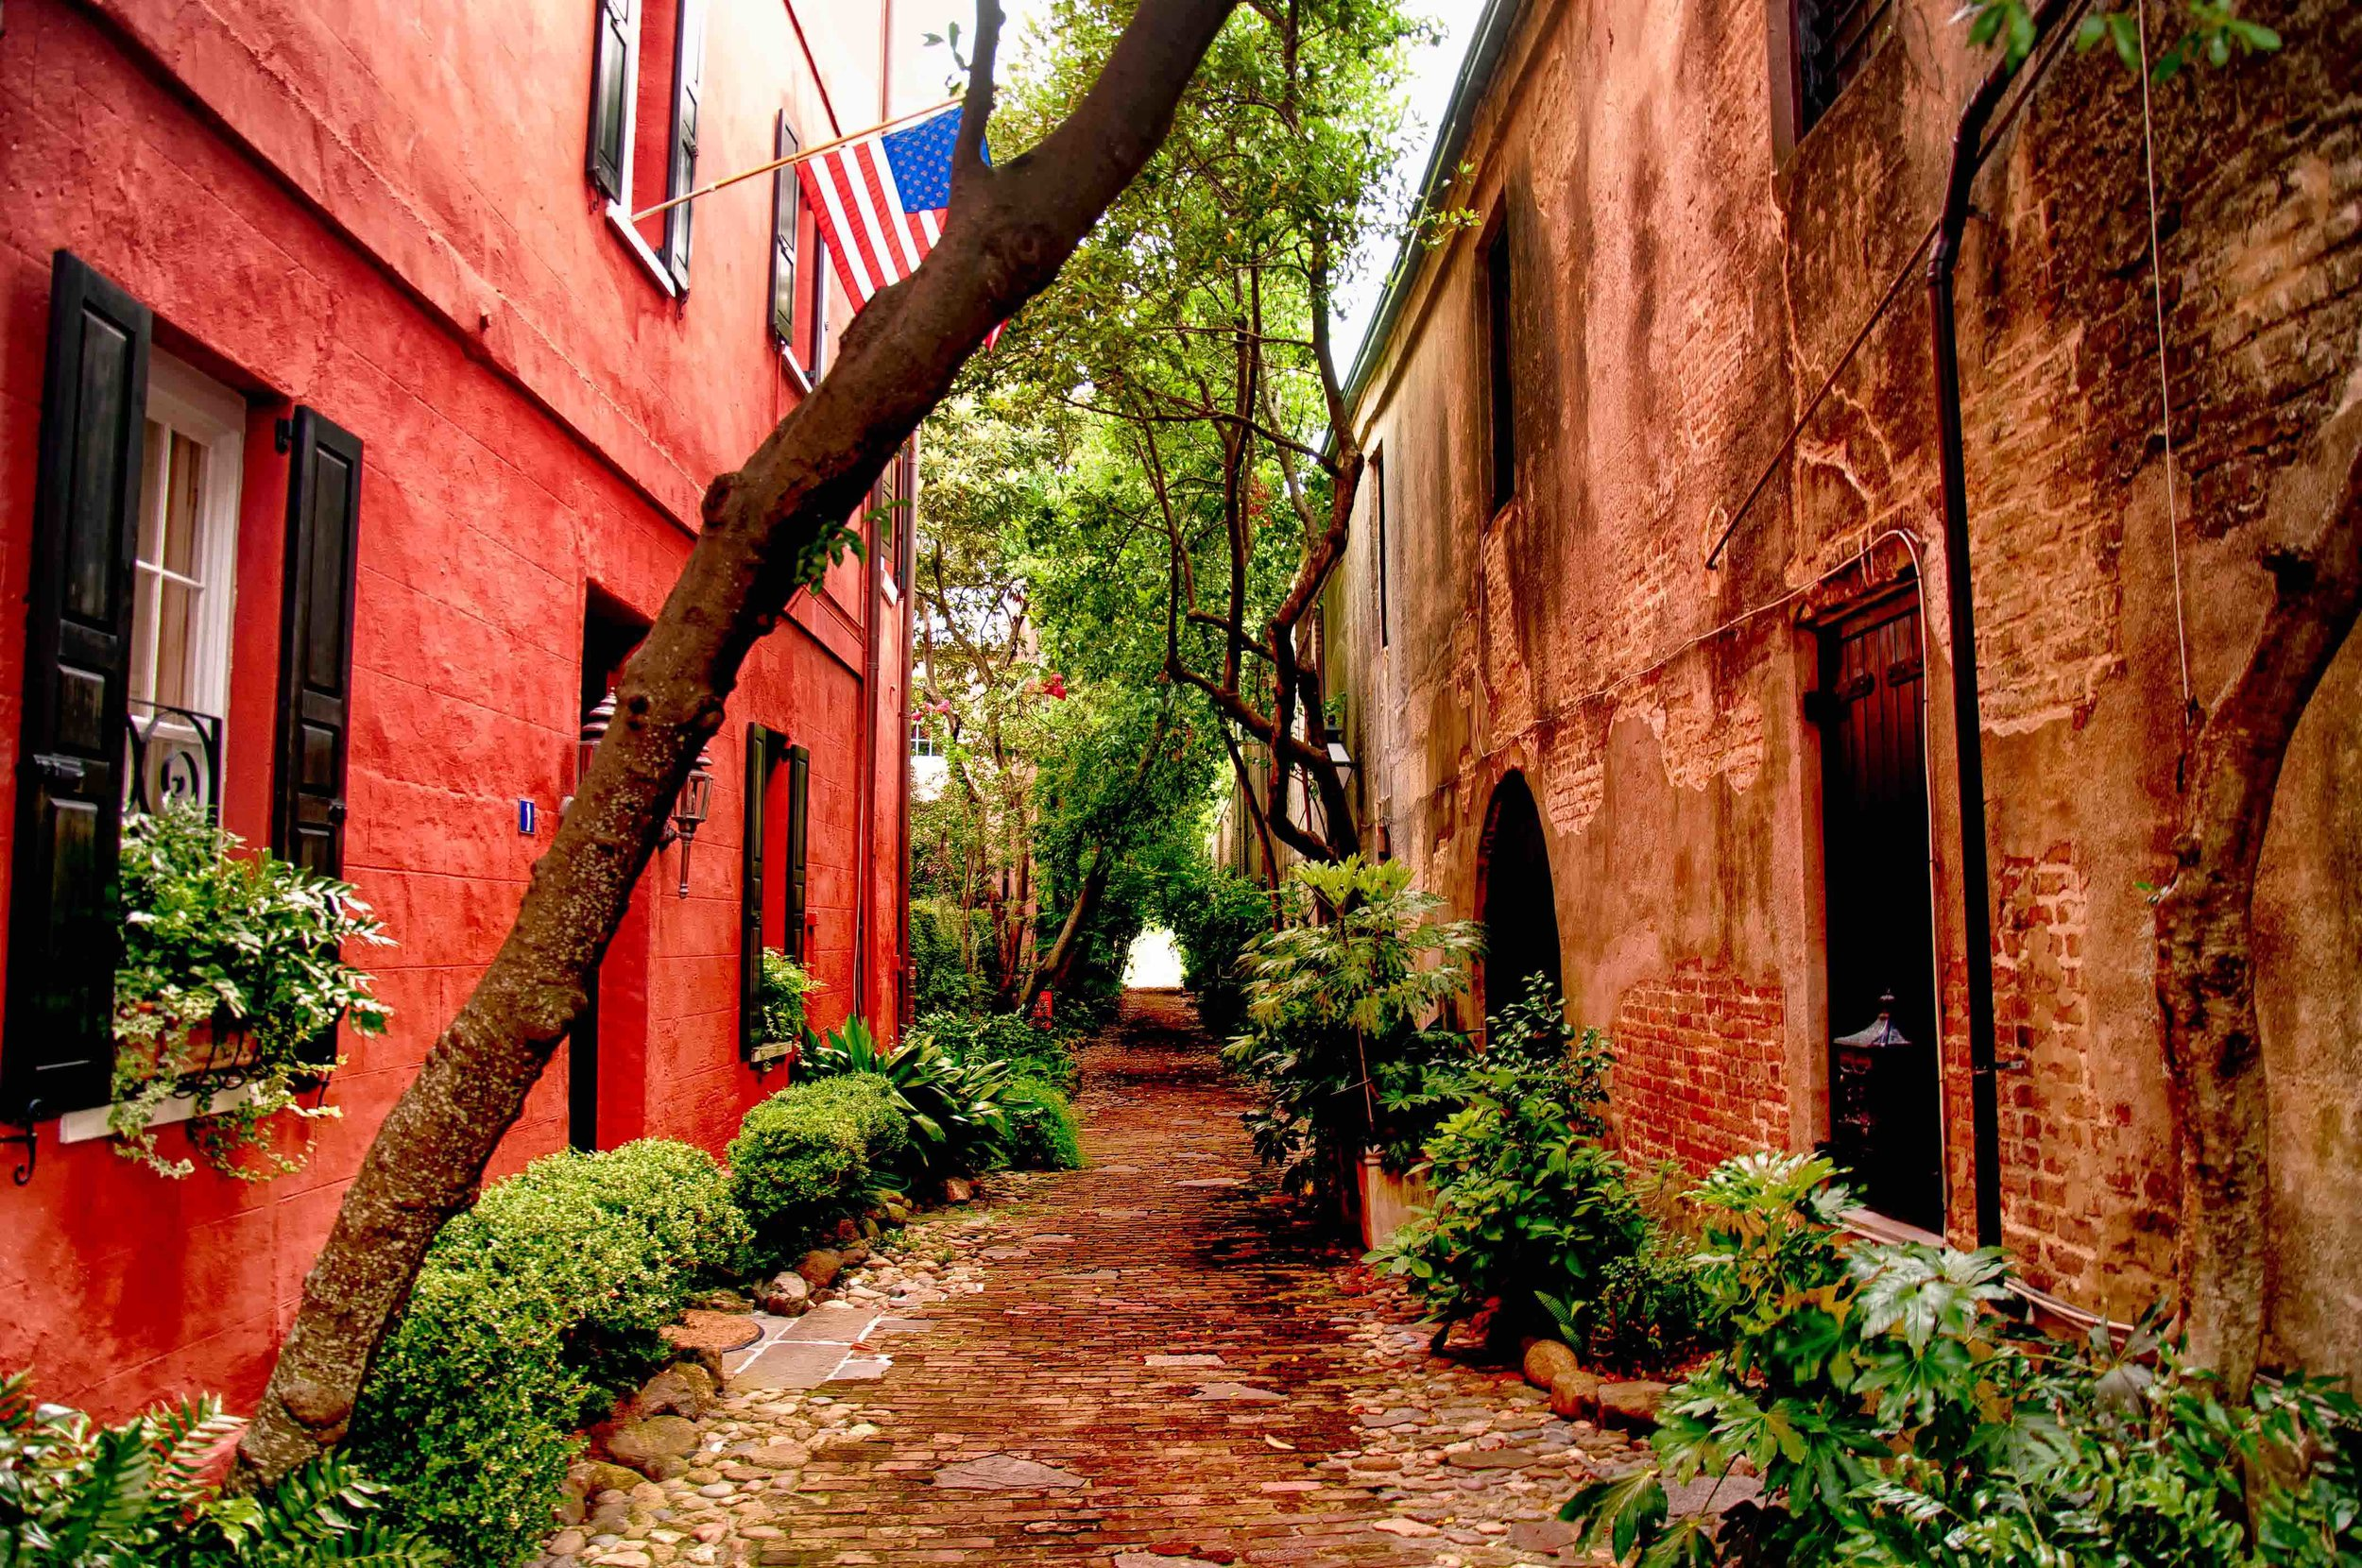 An alley in Charleston, SC. (Image via Wikimedia Commons)